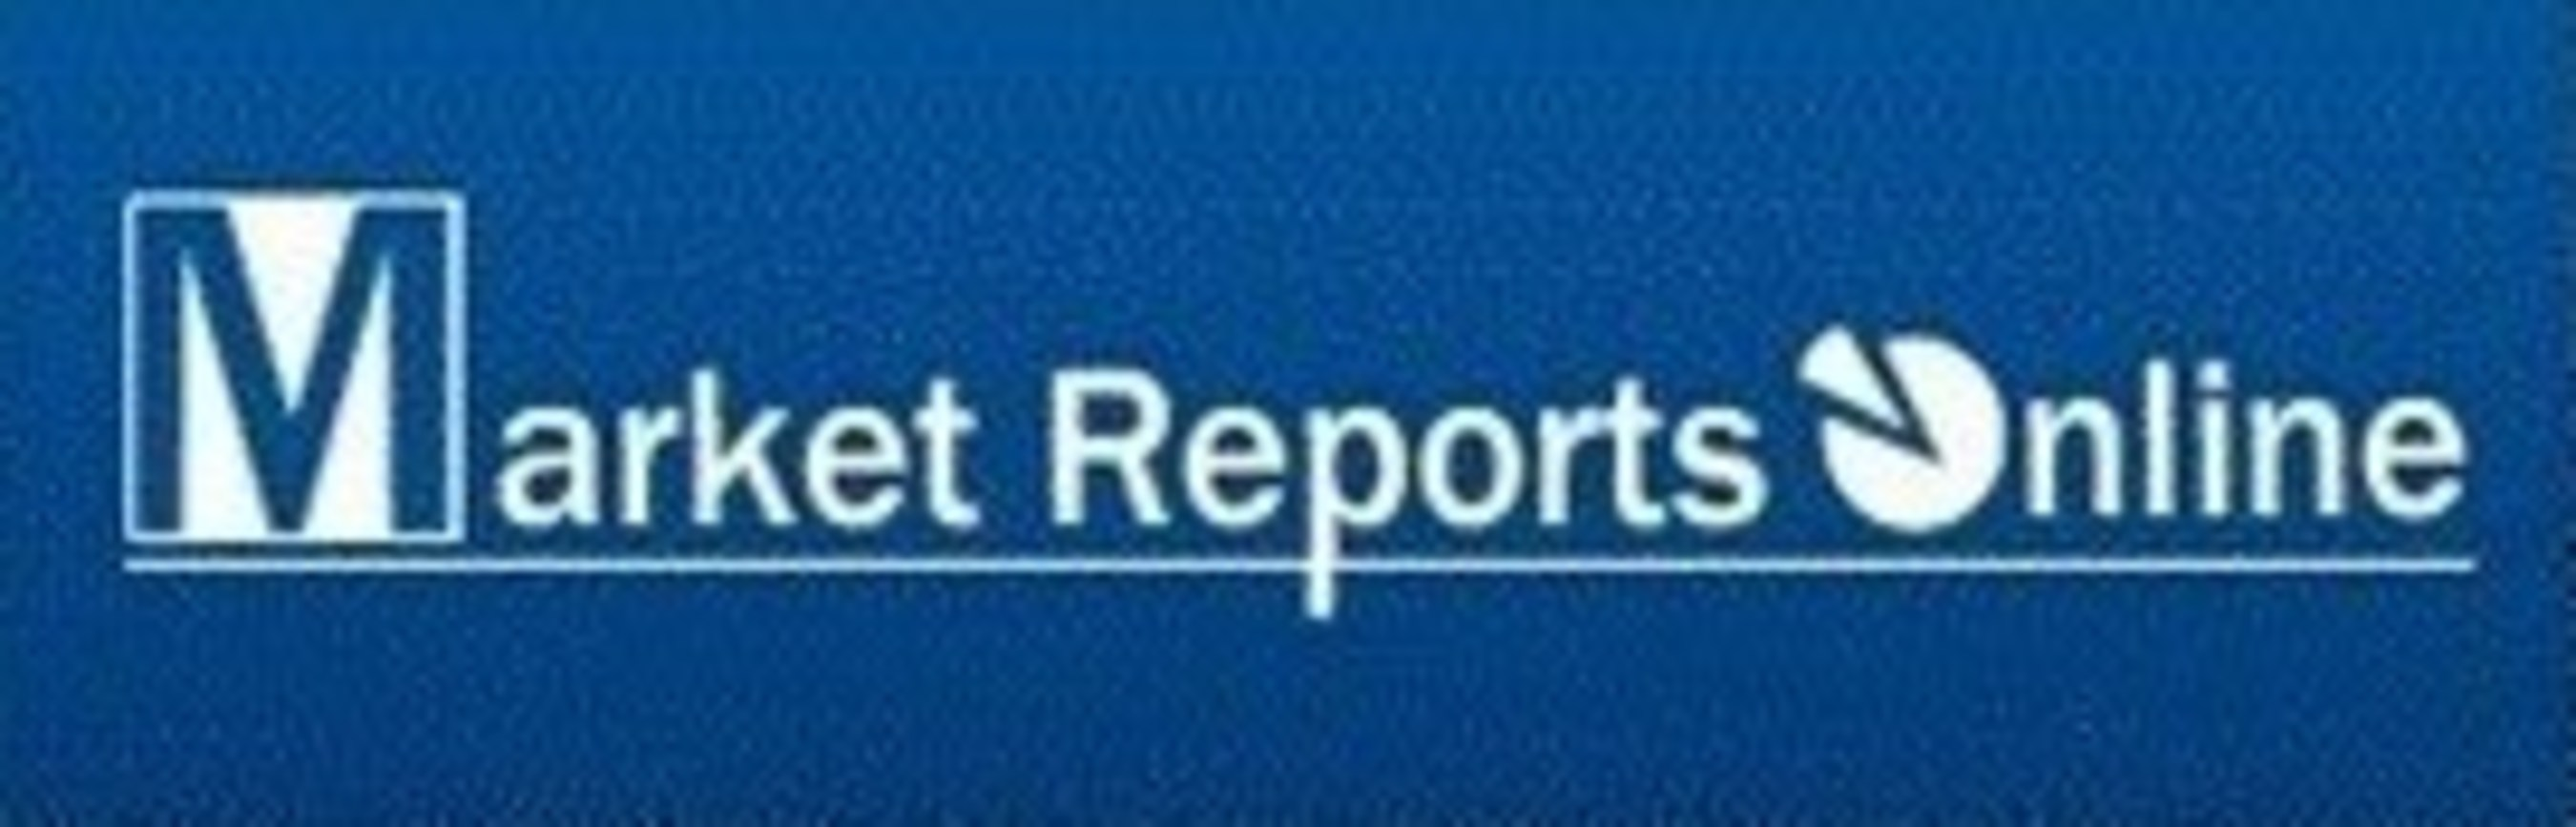 The US Waste Management Market: Industry Analysis & Outlook (2016-2020) Now Available at MarketReportsOnline.com